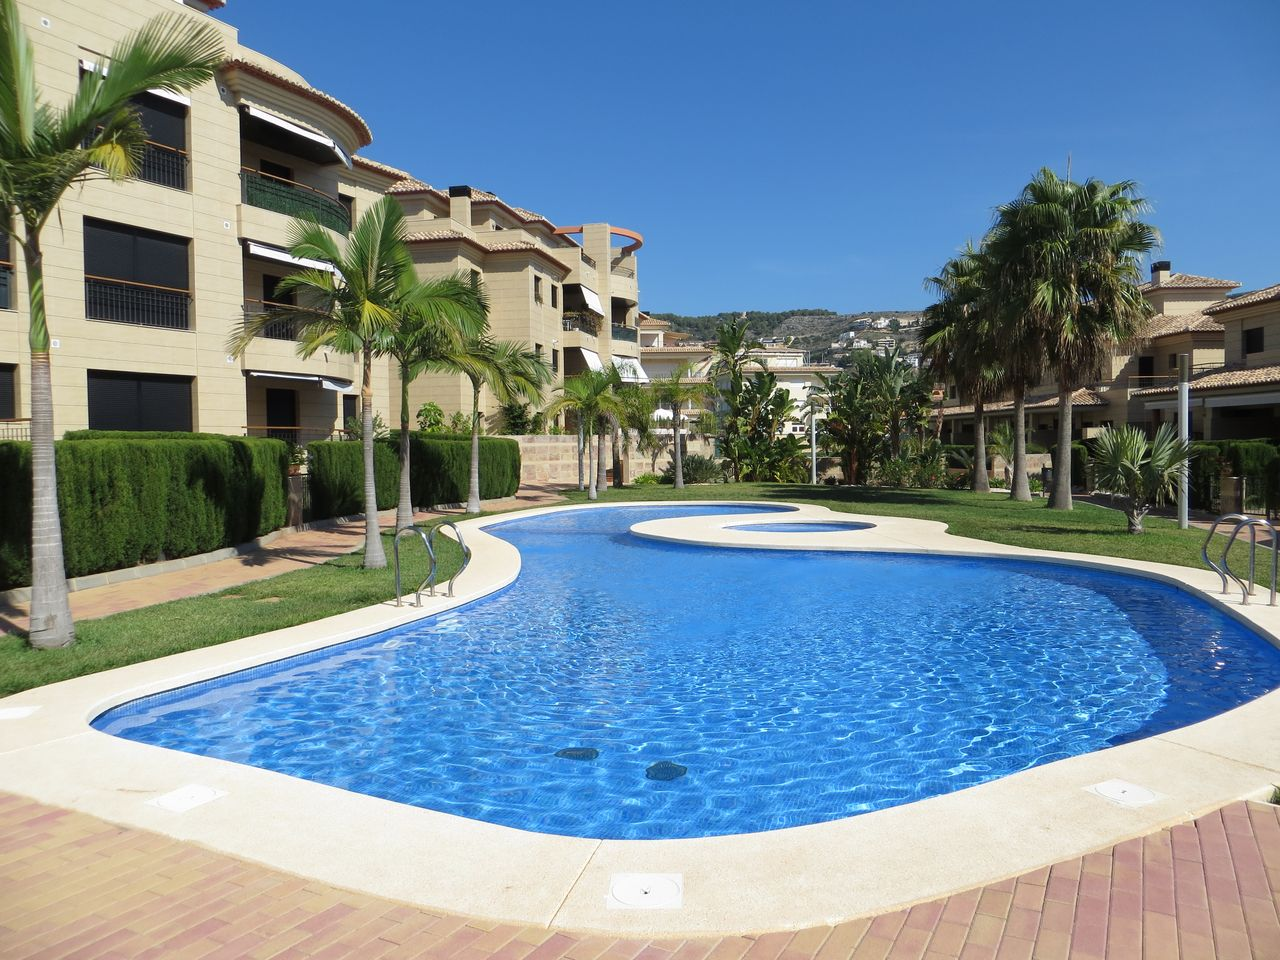 Appartementen te koop in Javea Haven